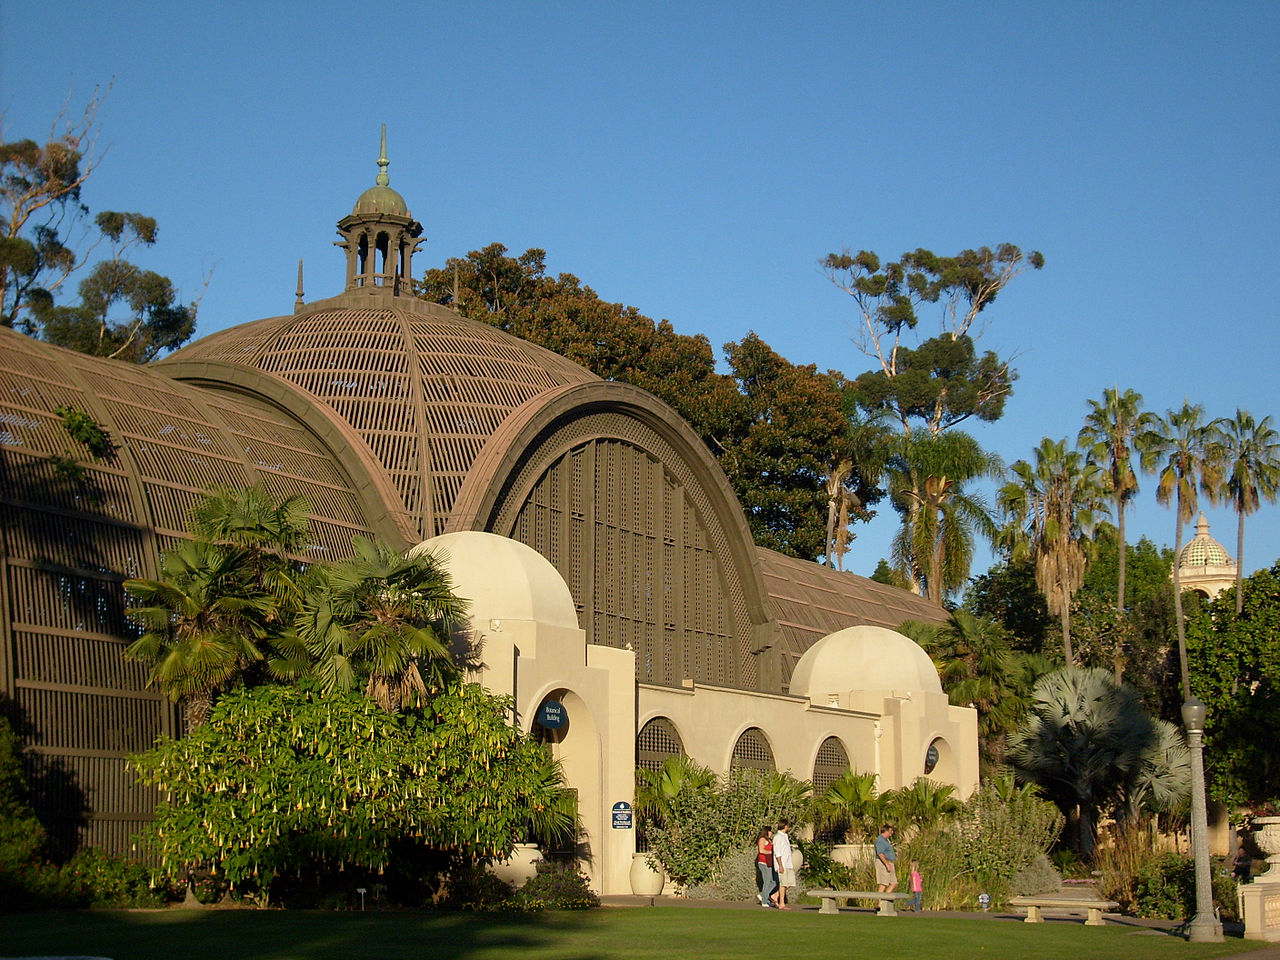 File:Botanical Building Balboa Park.jpg - Wikimedia Commons